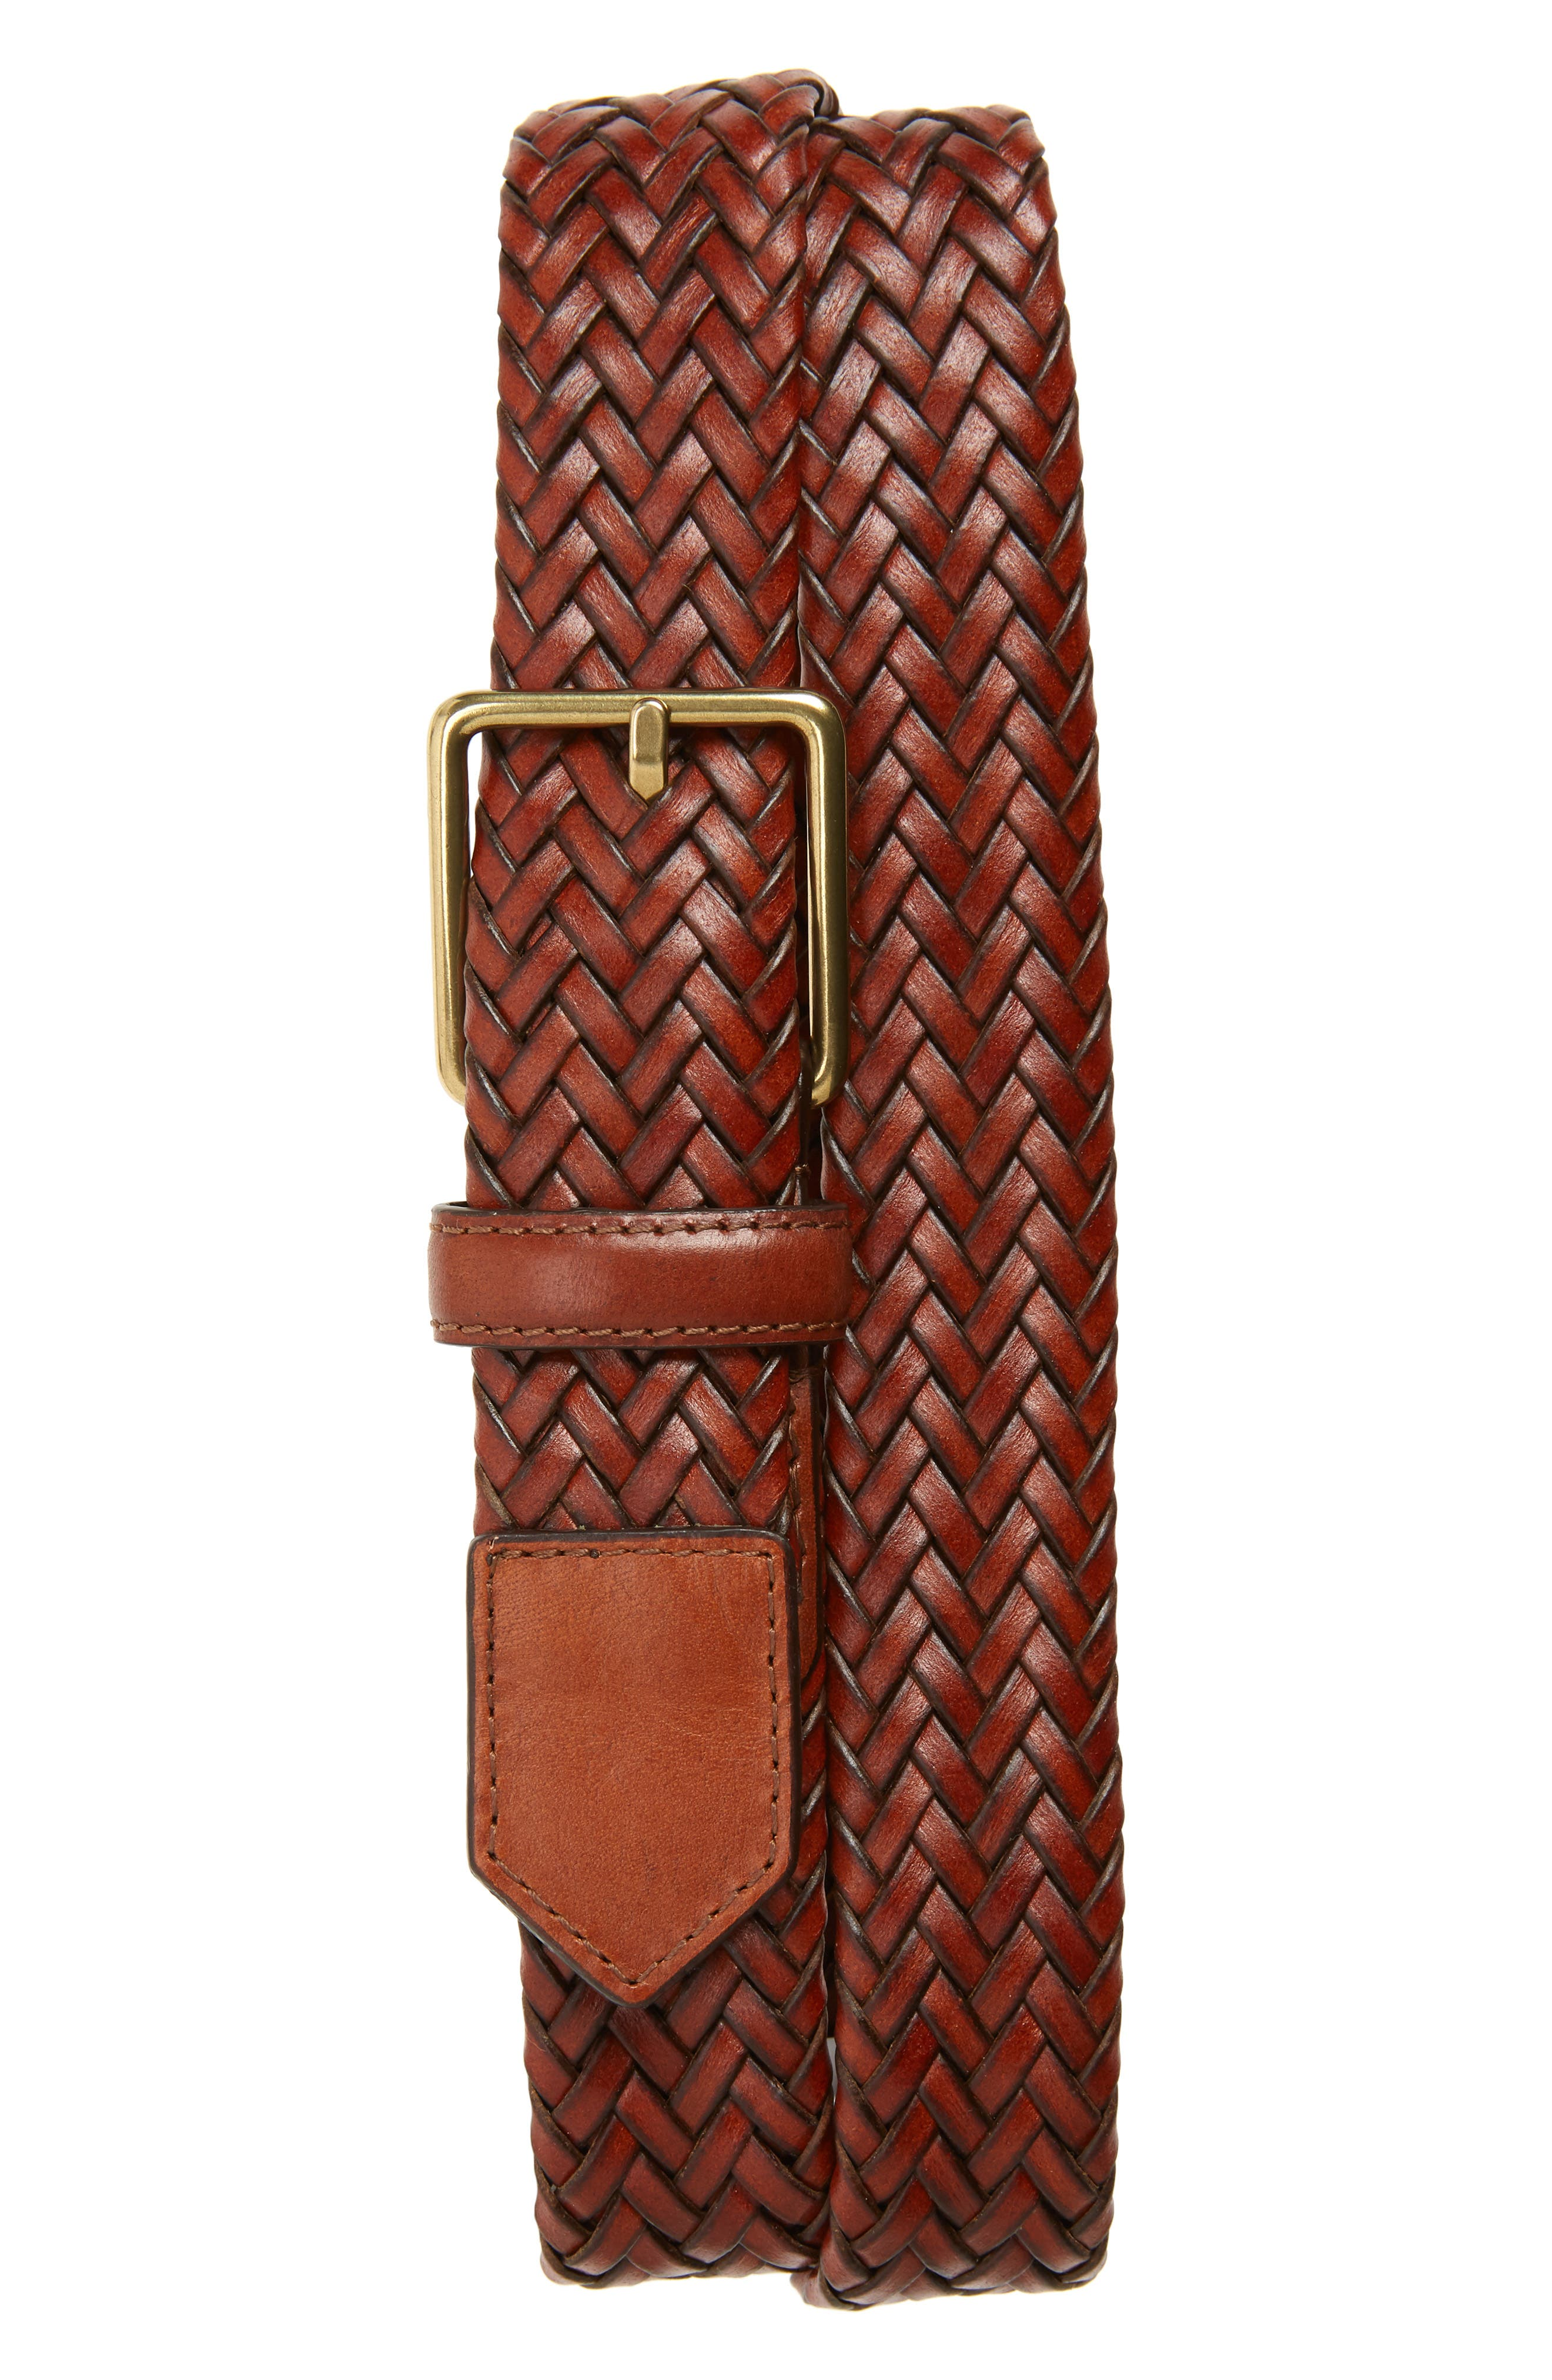 COLE HAAN, Woven Leather Belt, Main thumbnail 1, color, WOODBURY